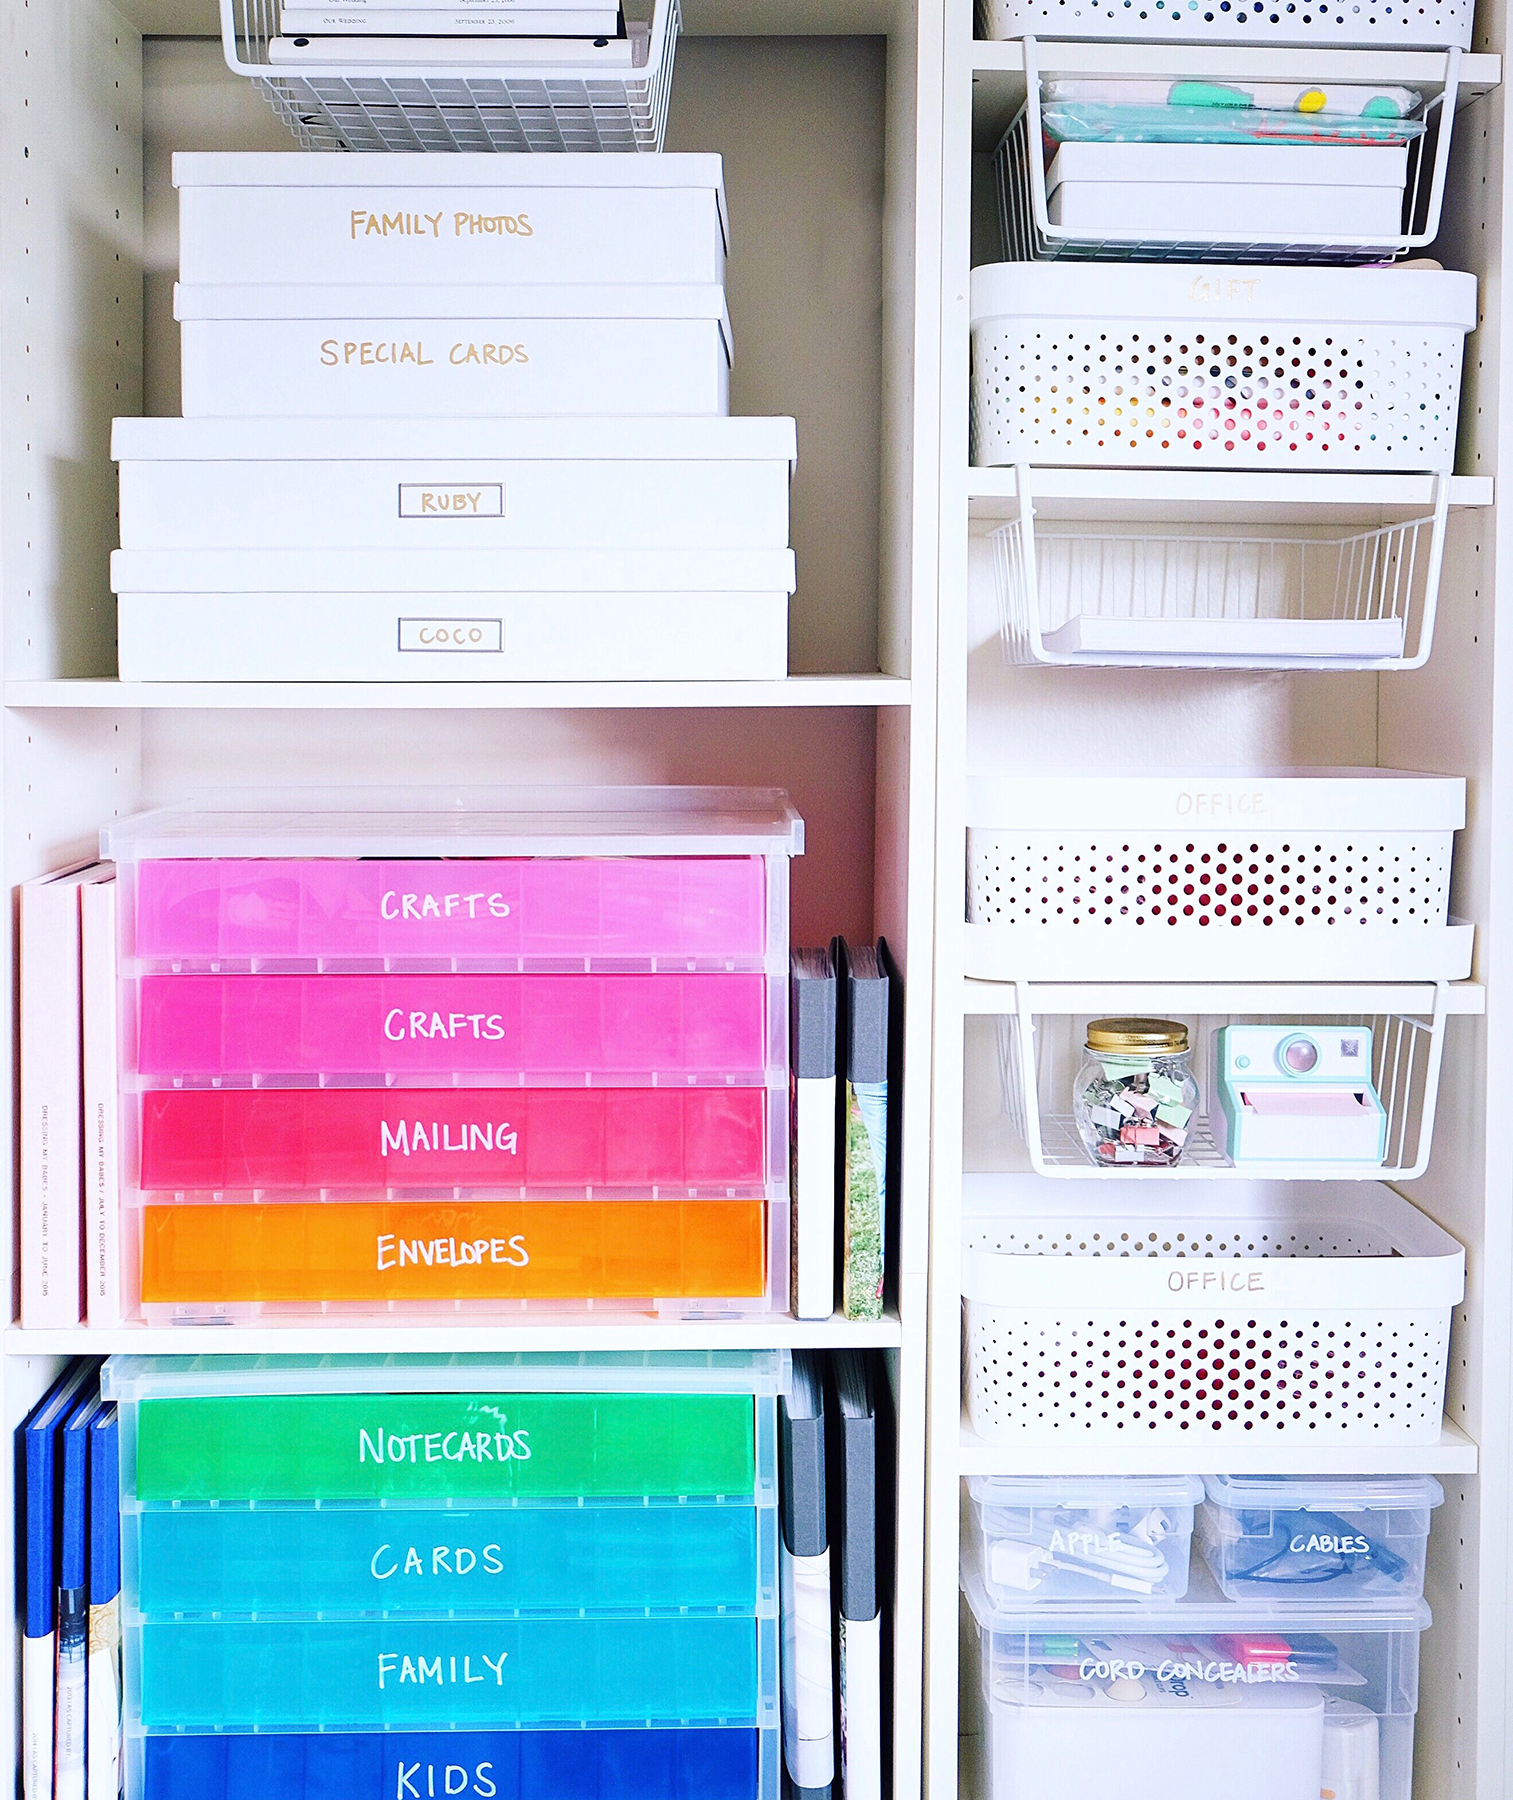 Office supplies in rainbow bins